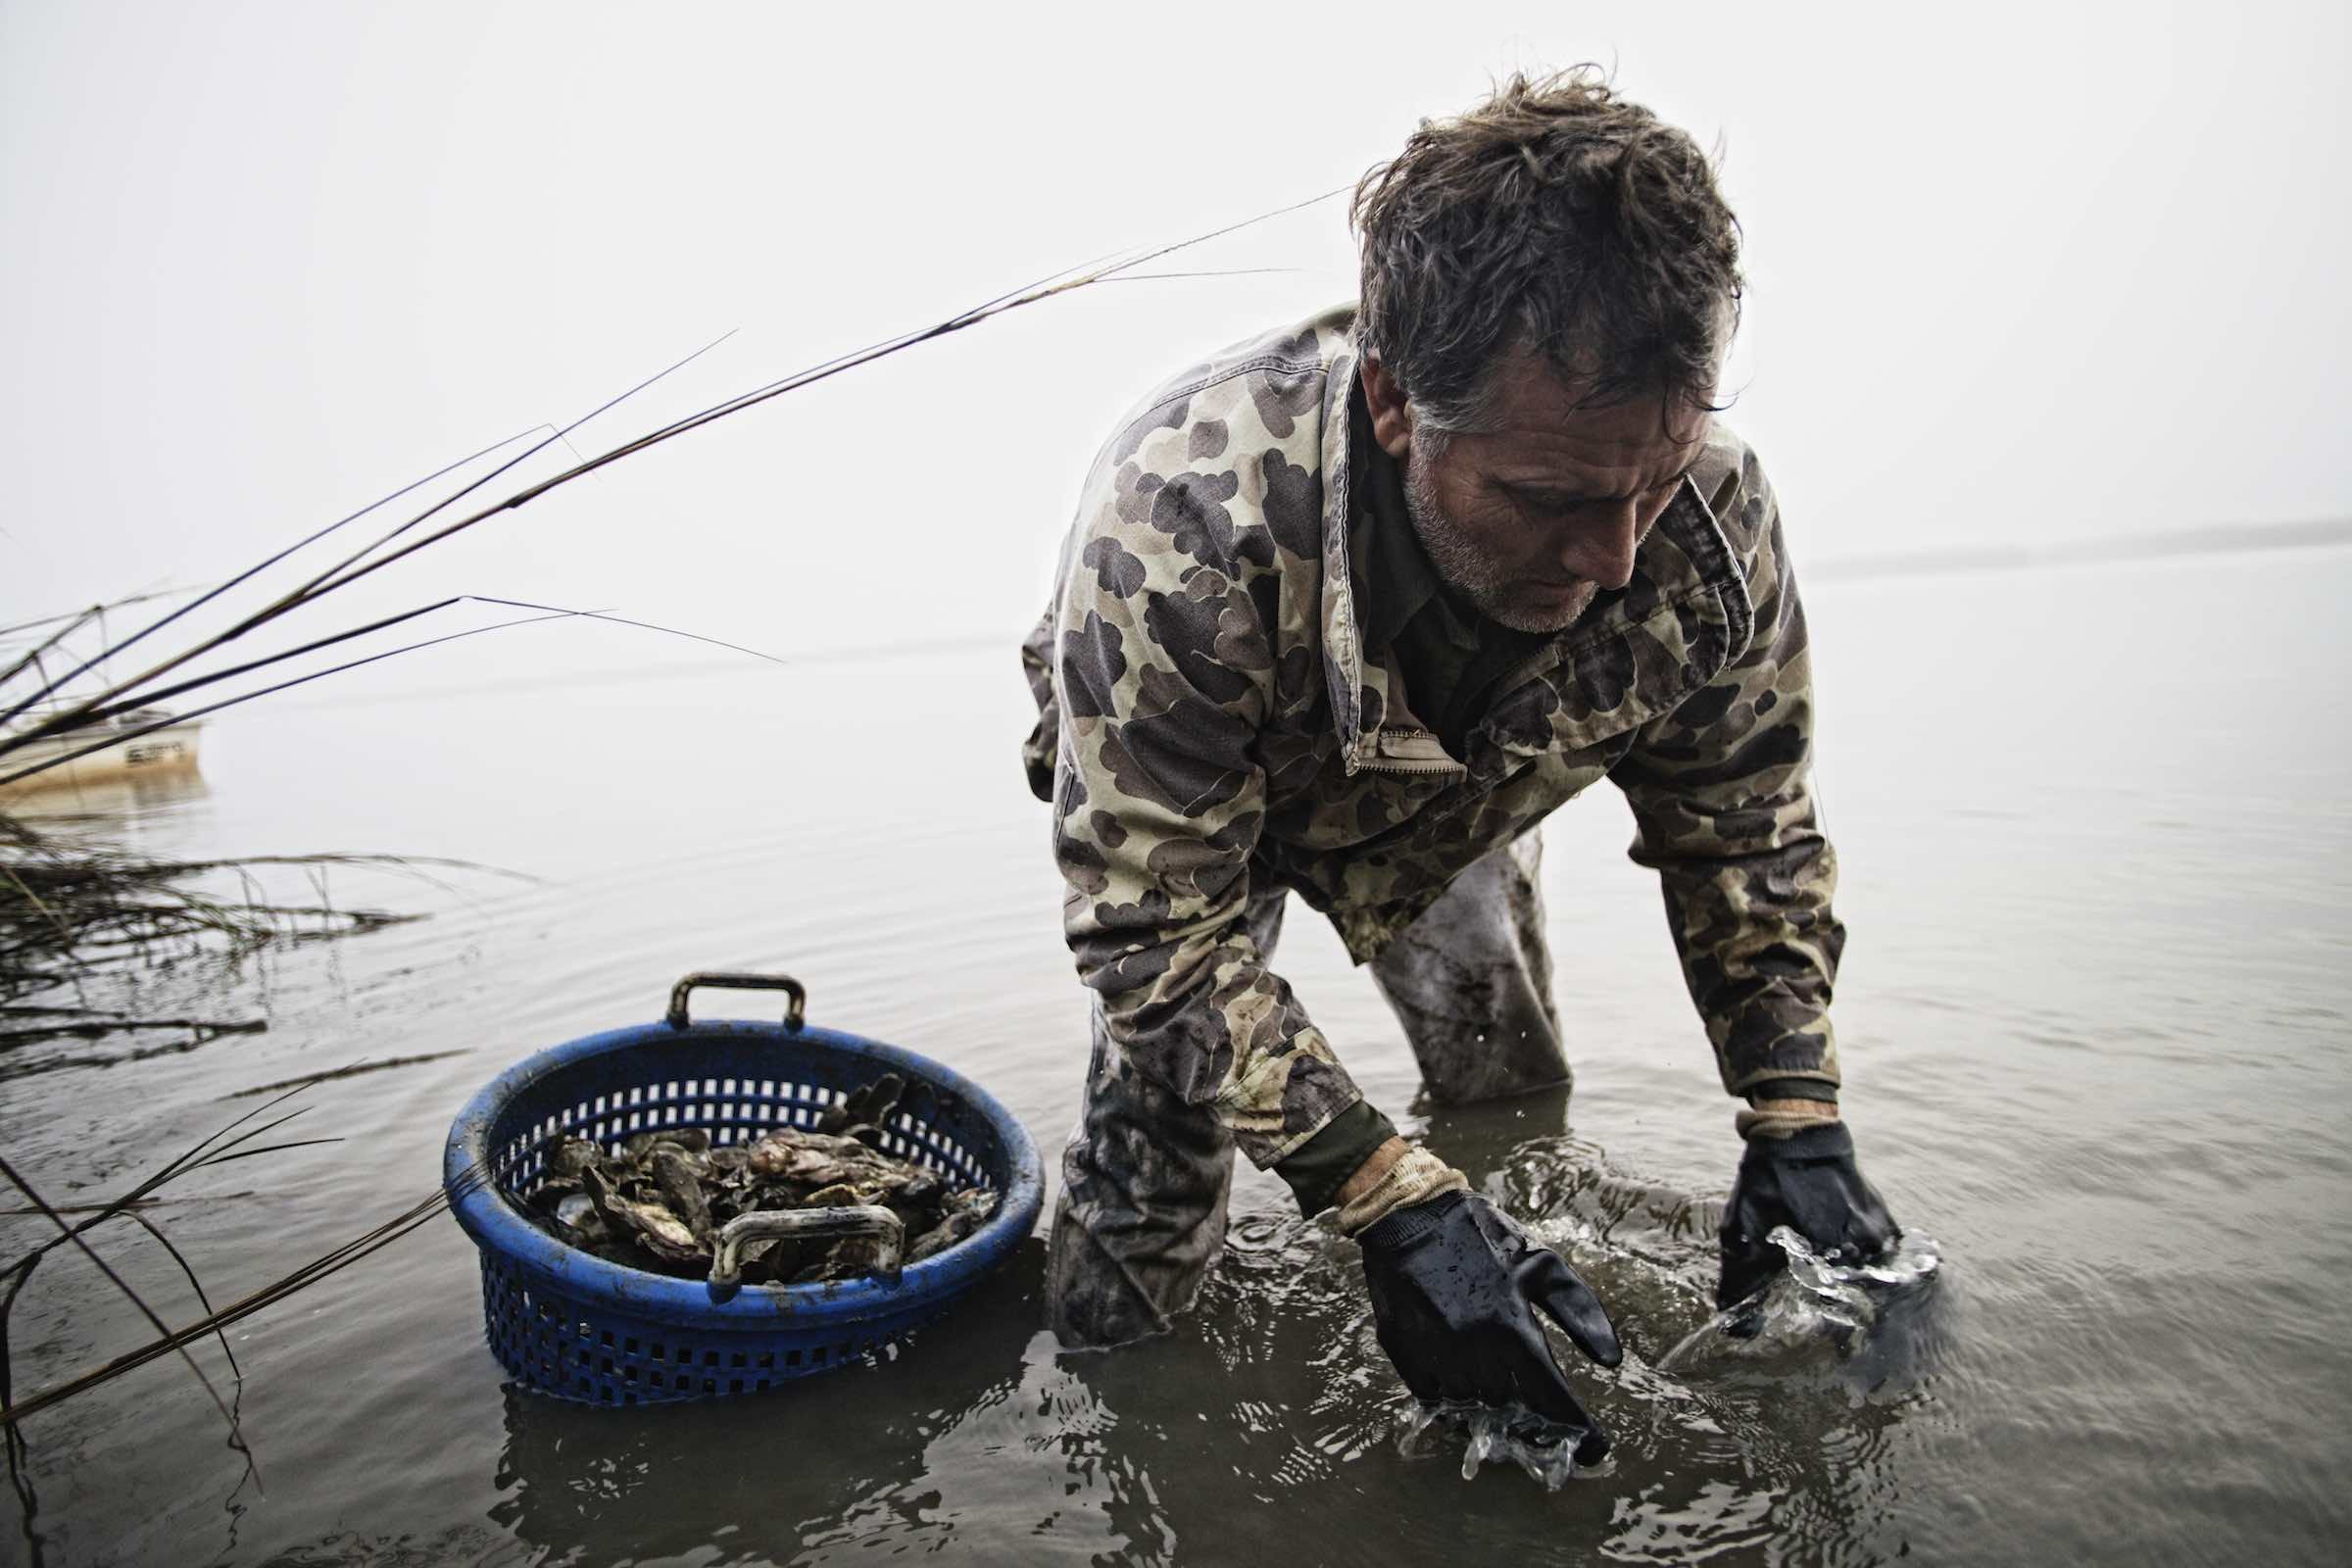 Fisherman and his basket of oysters in shallow water.